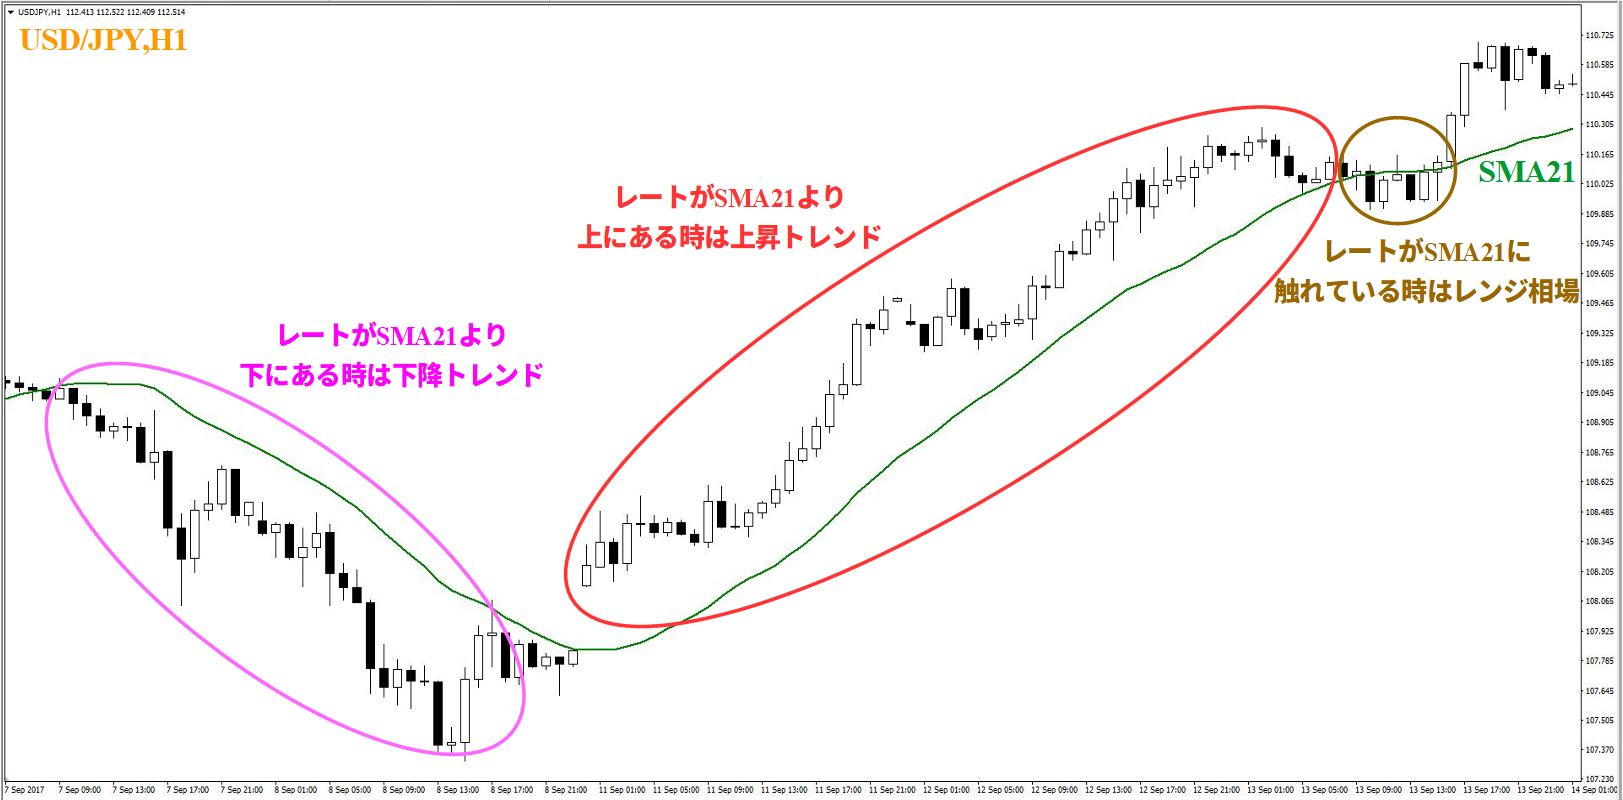 USD/JPY, H1